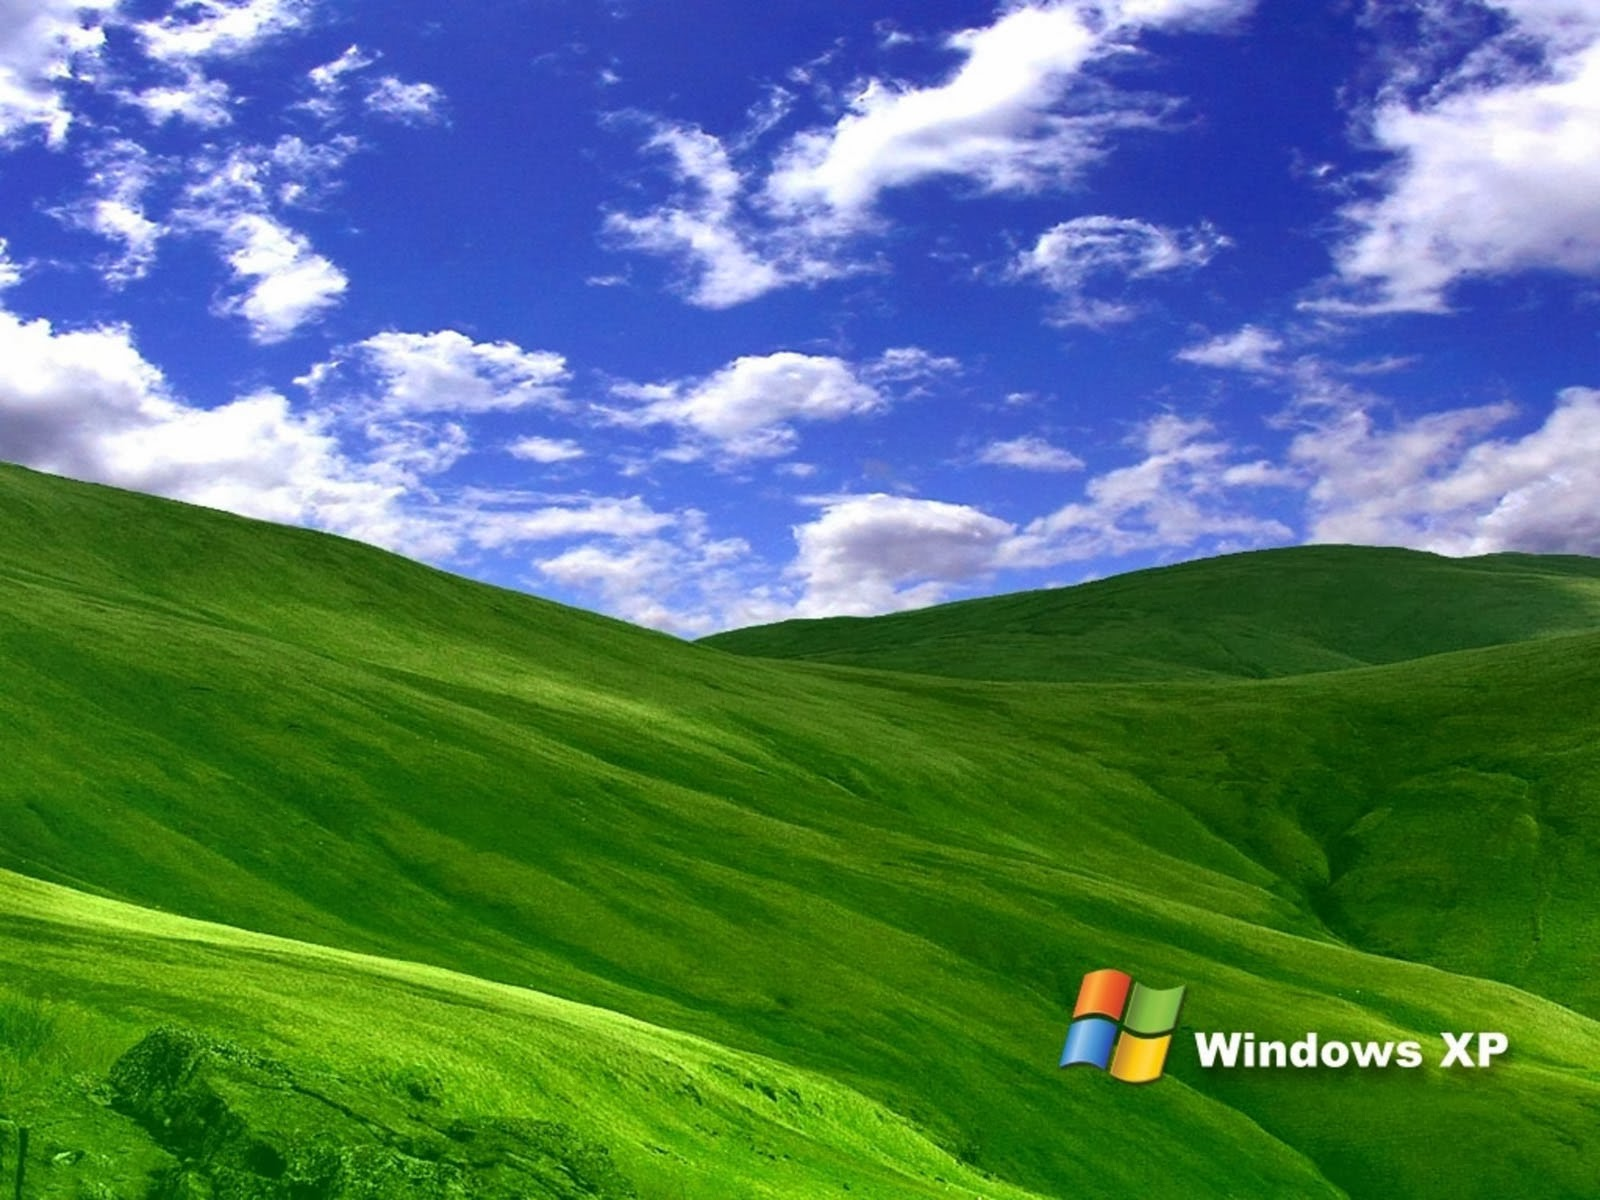 Grass windows xp wallpapers totalinfo90 for Window background